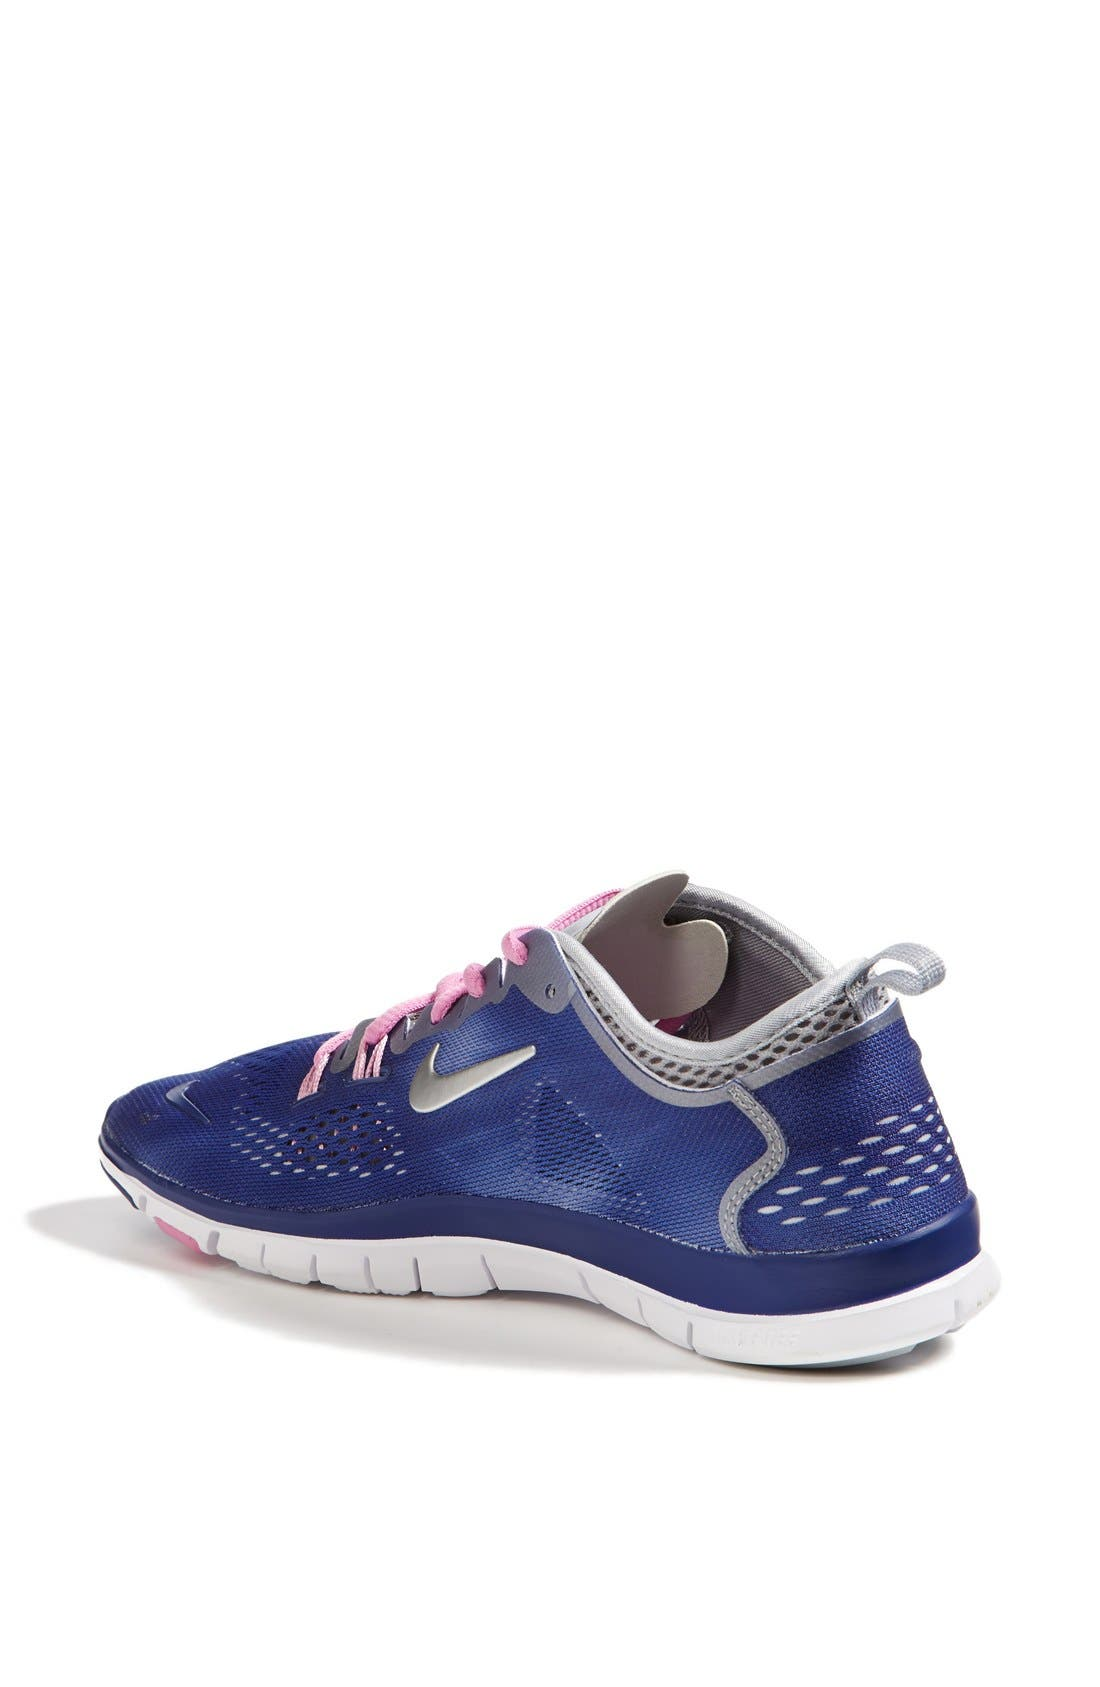 Alternate Image 2  - Nike 'Free 5.0 Fit' Tie Dye Training Shoe (Women)